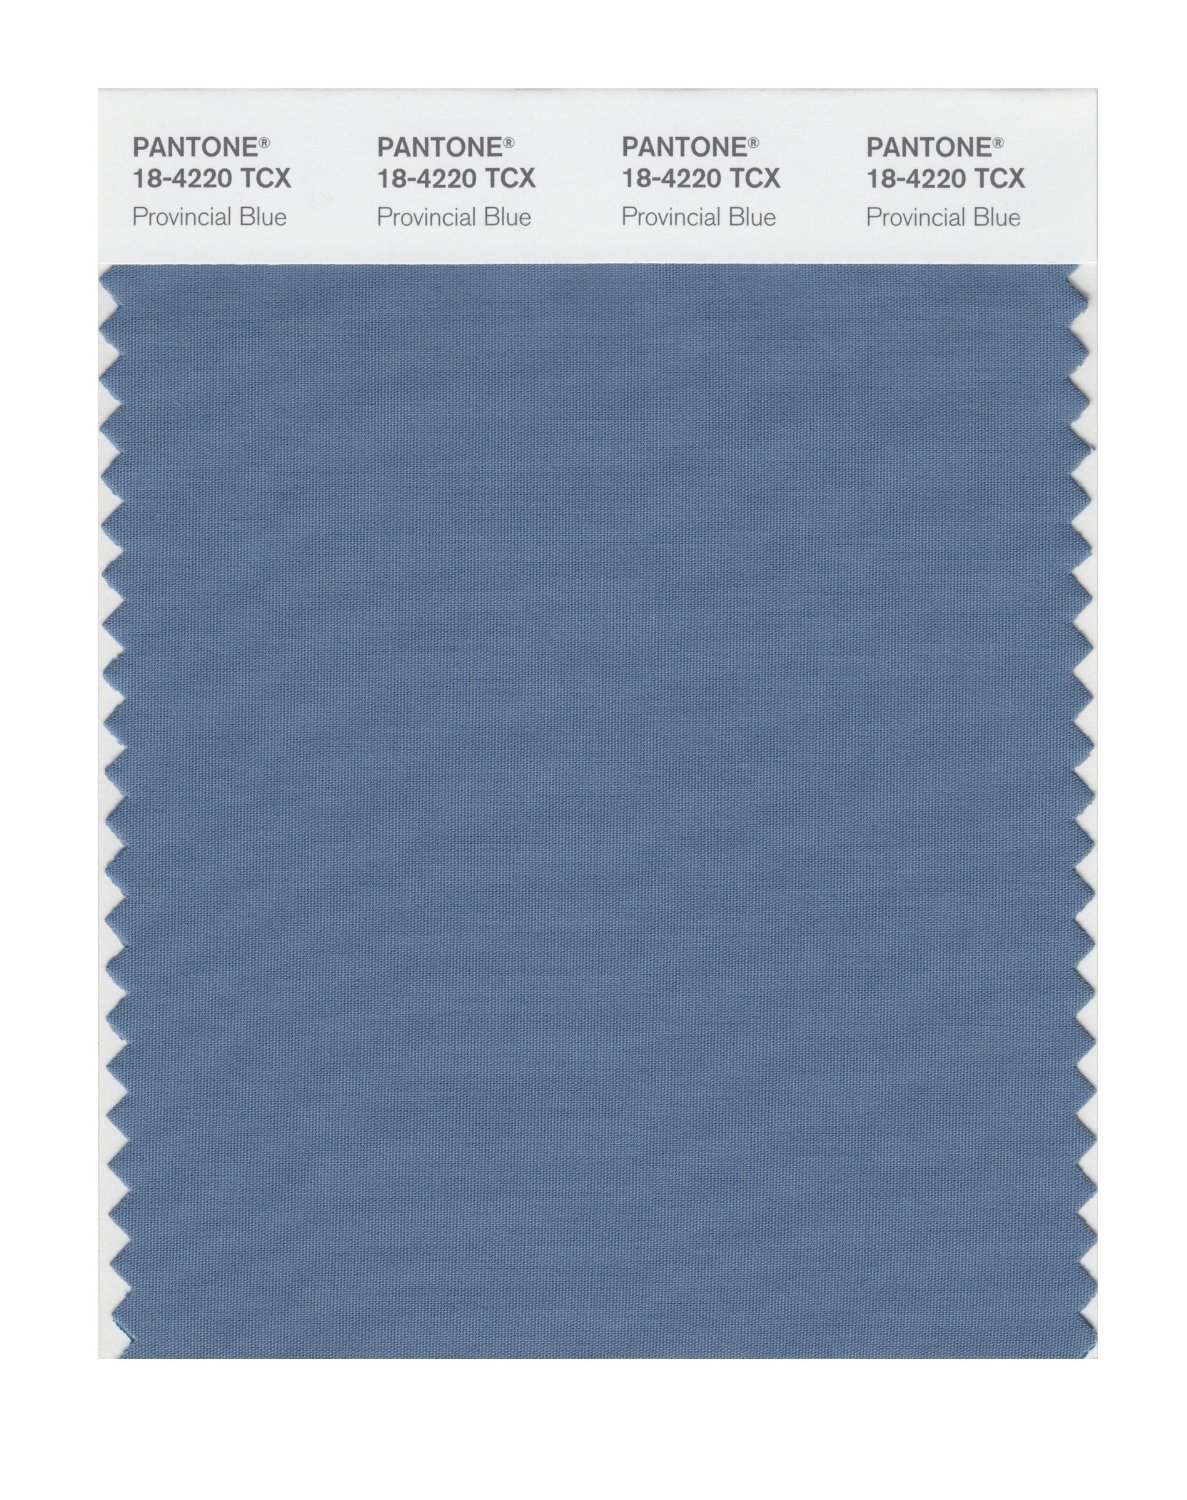 Pantone Smart Swatch 18-4220 Provincial Blue